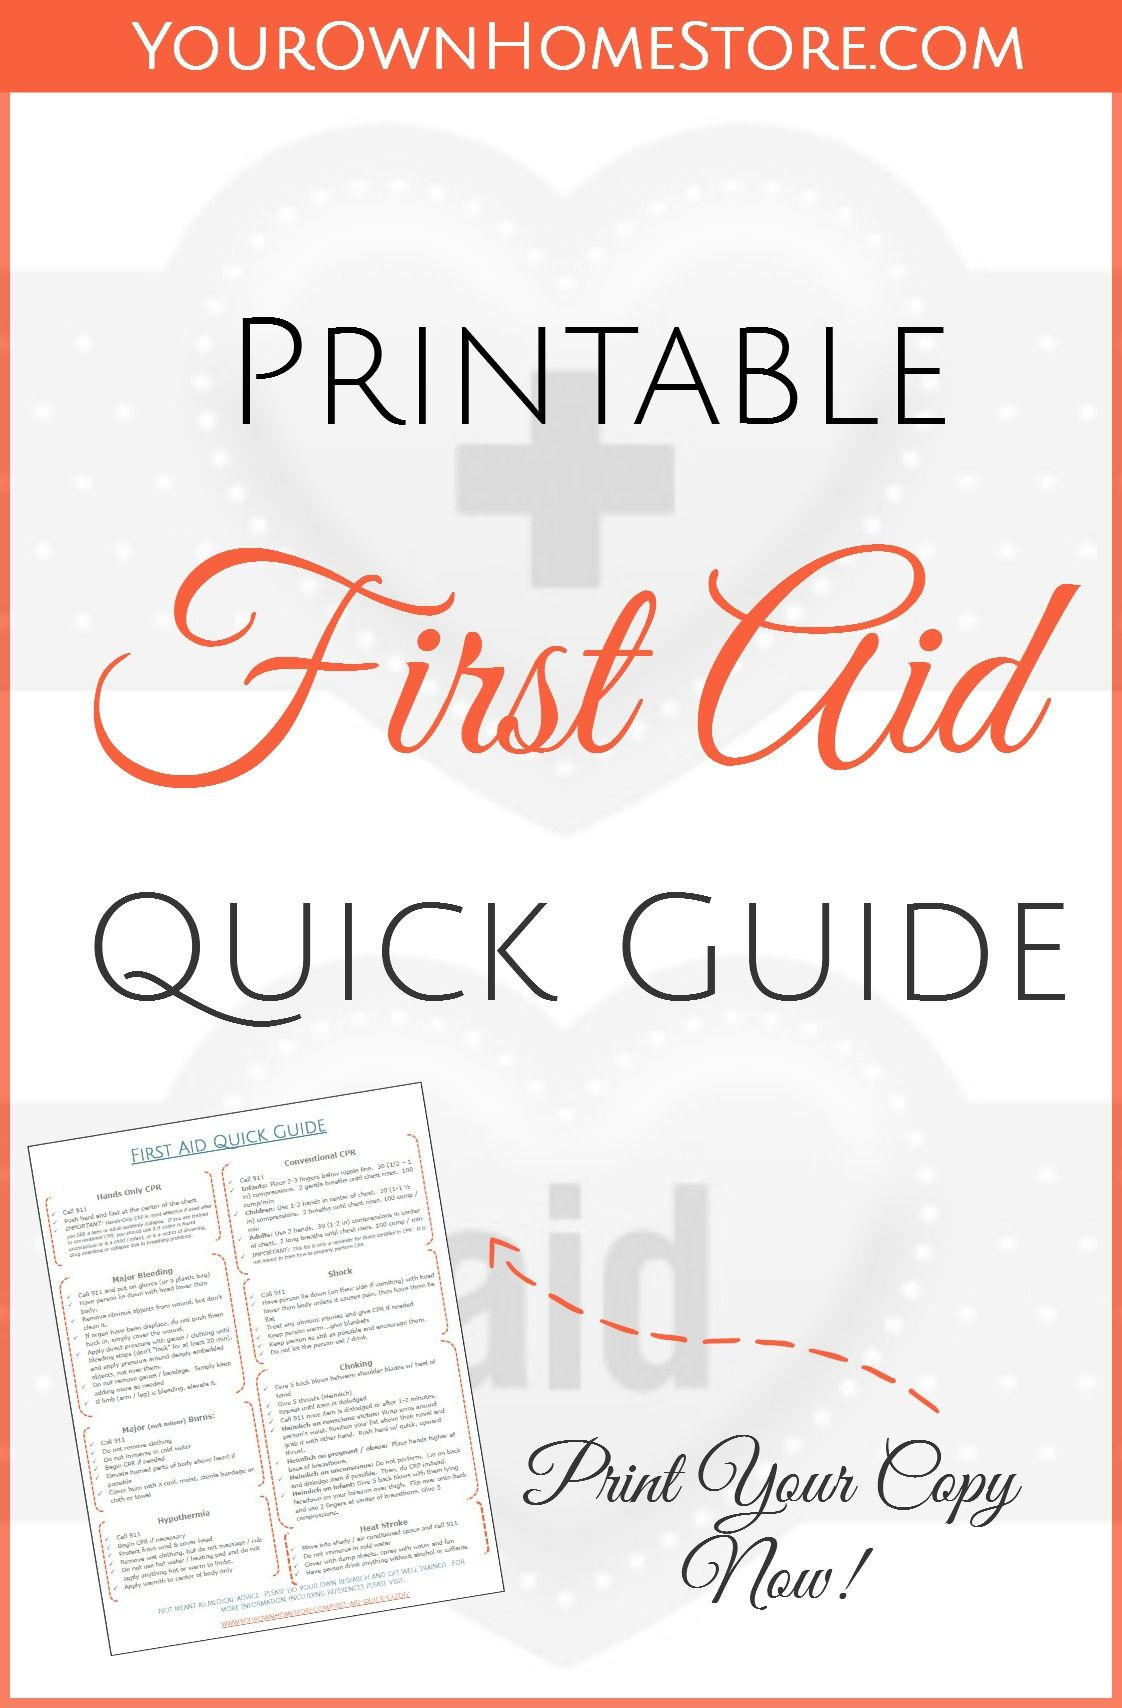 image about Printable First Aid Guides called A Cost-free Printable Initial Assistance Marketing consultant Unexpected emergency, Physical fitness and